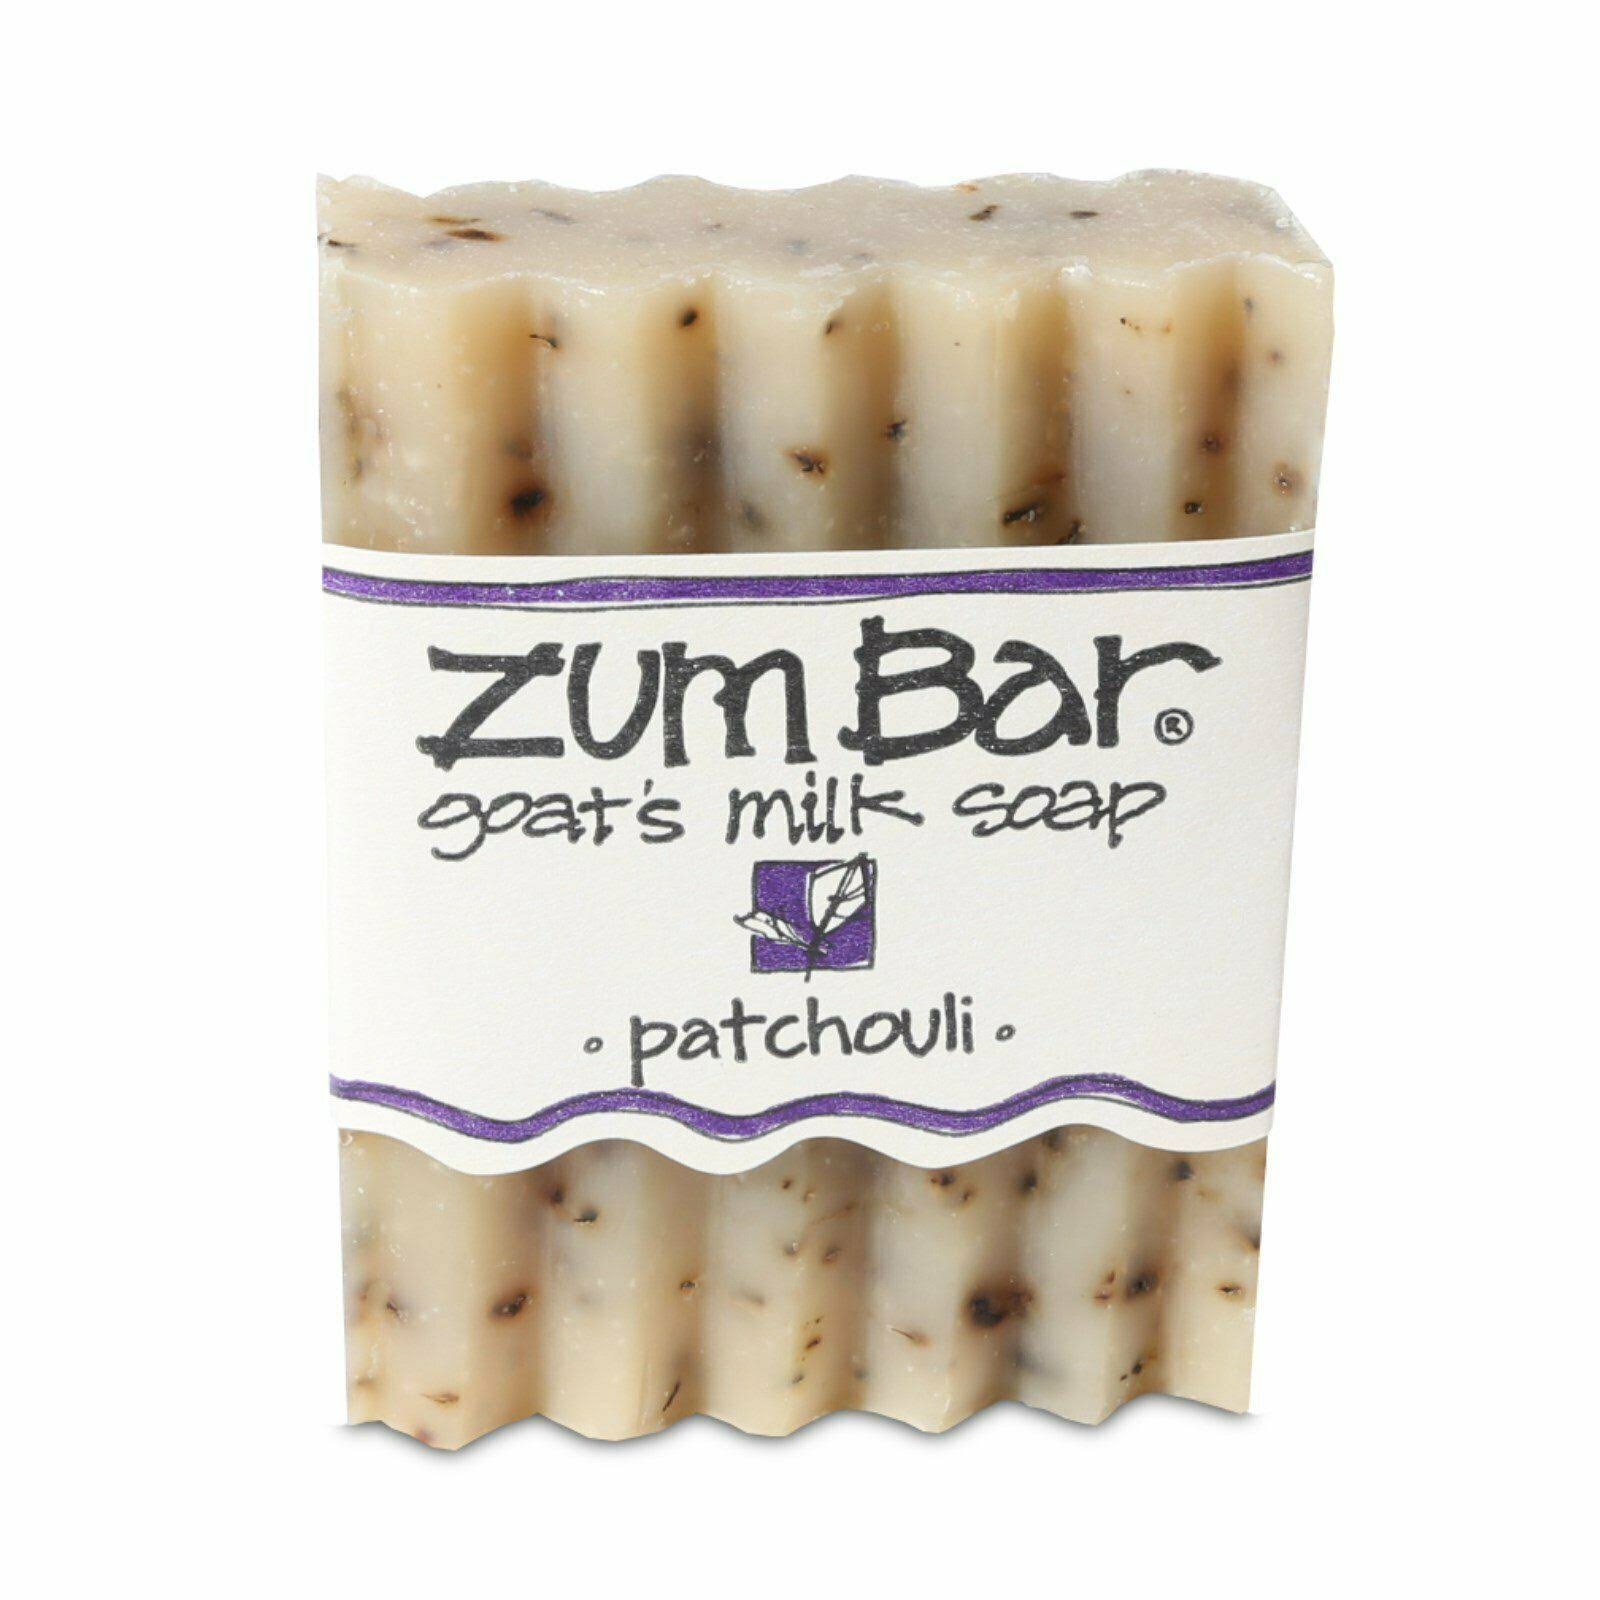 Zum Bar Goat's Milk Soap - Patchouli